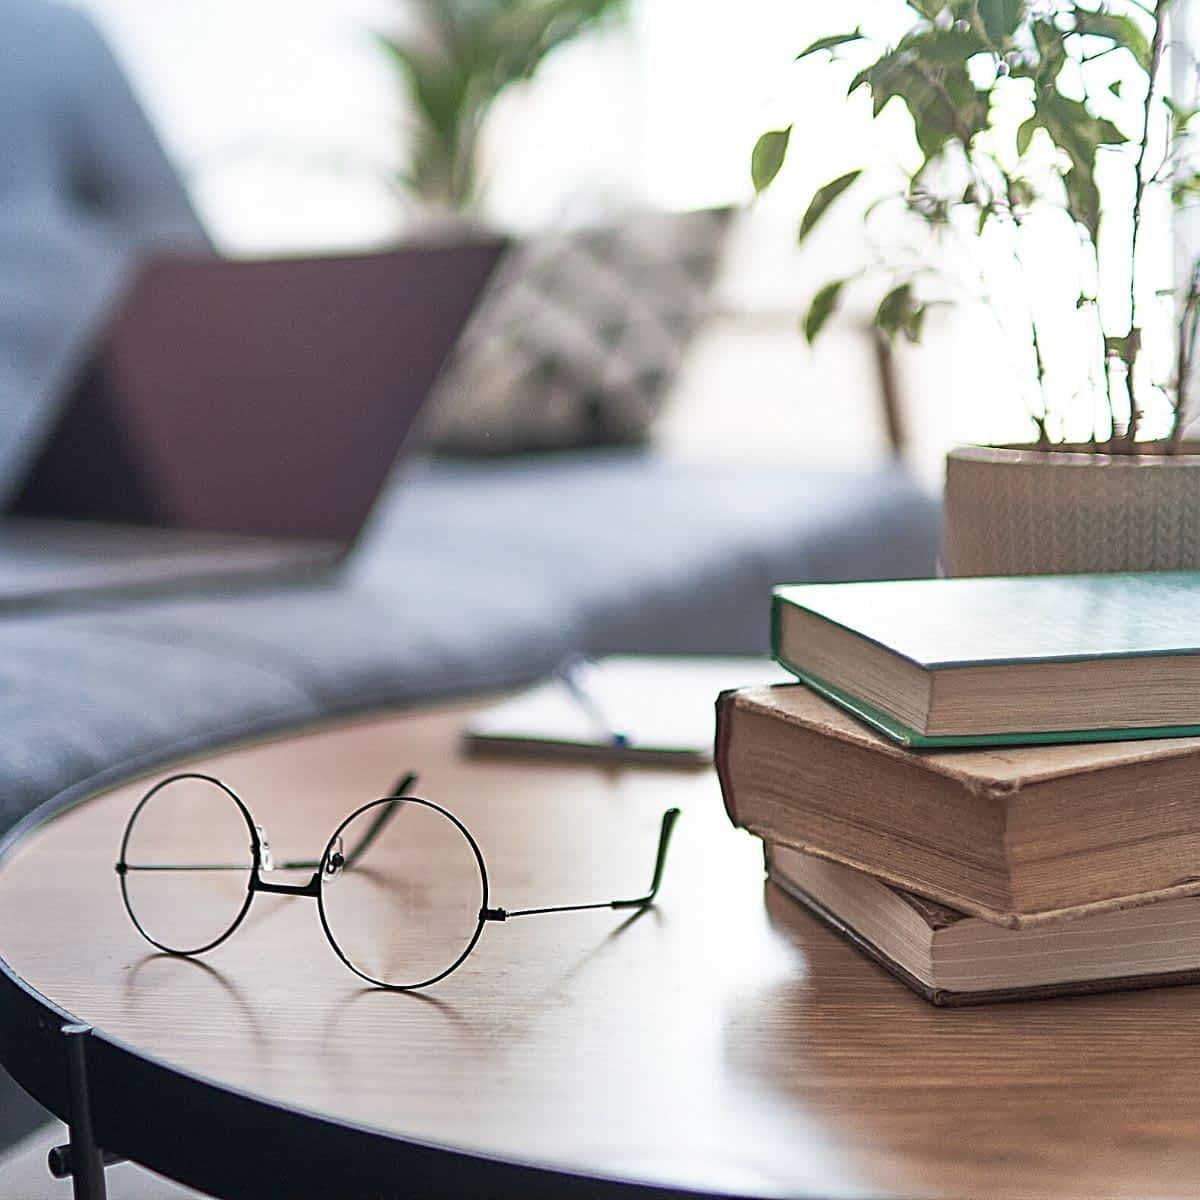 Books and other tools to help you grow as a writer.